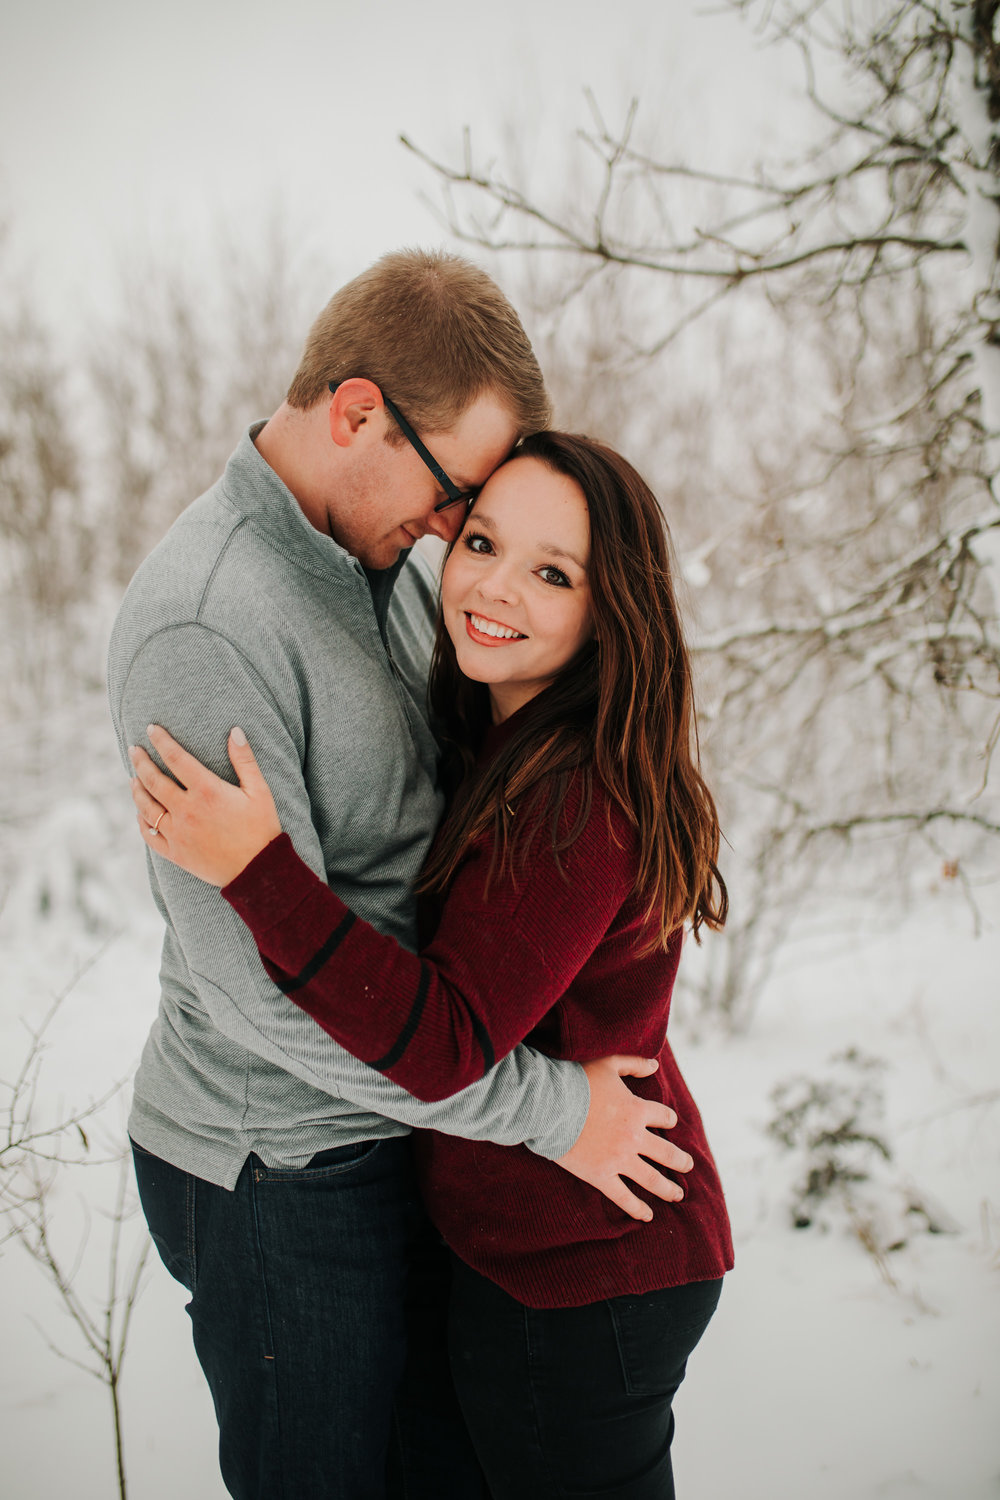 Vanessa & Dan - Engaged - Nathaniel Jensen Photography - Omaha Nebraska Wedding Photographer - Standing Bear Lake - Snowy Engagement Session-63.jpg